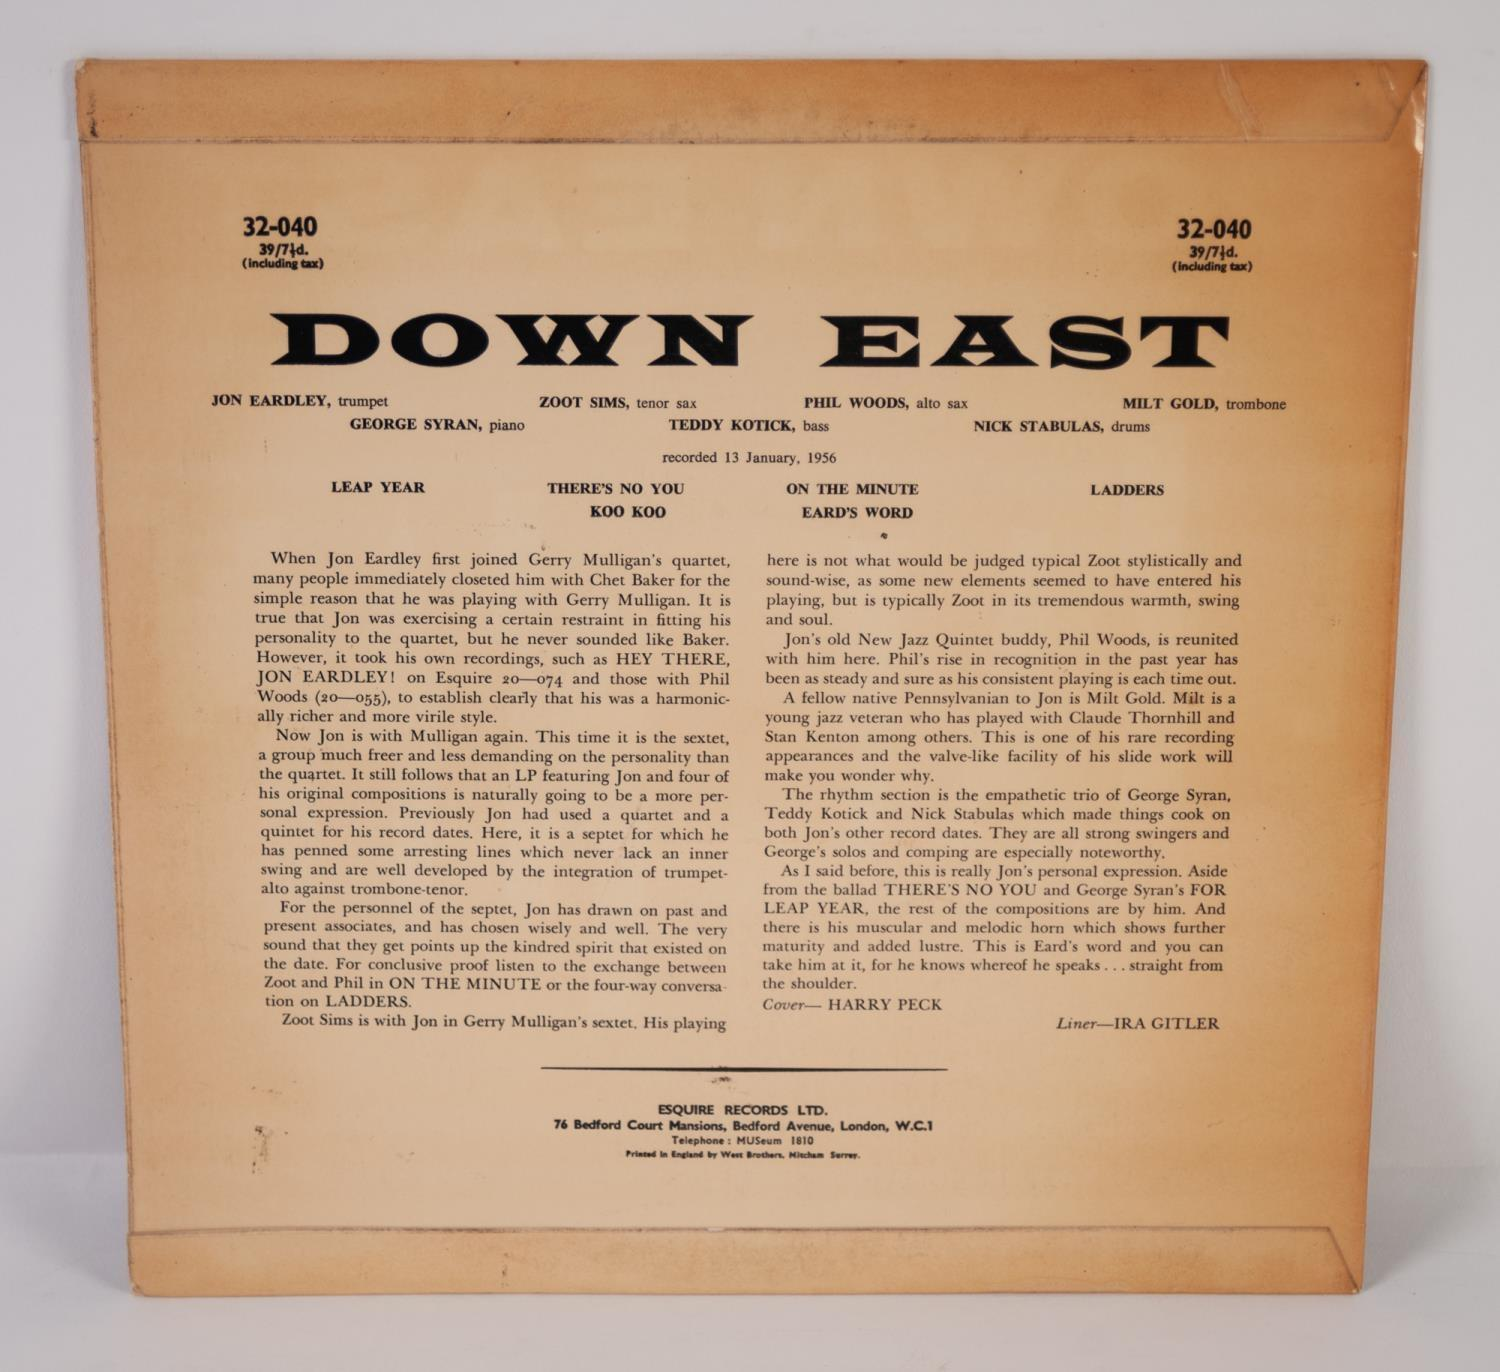 JAZZ, VINYL RECORDS- E IS FOR JON EARDLEY SEVEN-DOWN EAST, THE DOWNEST JAZZ WITH JON EARDLEY, ZOOT - Image 2 of 4